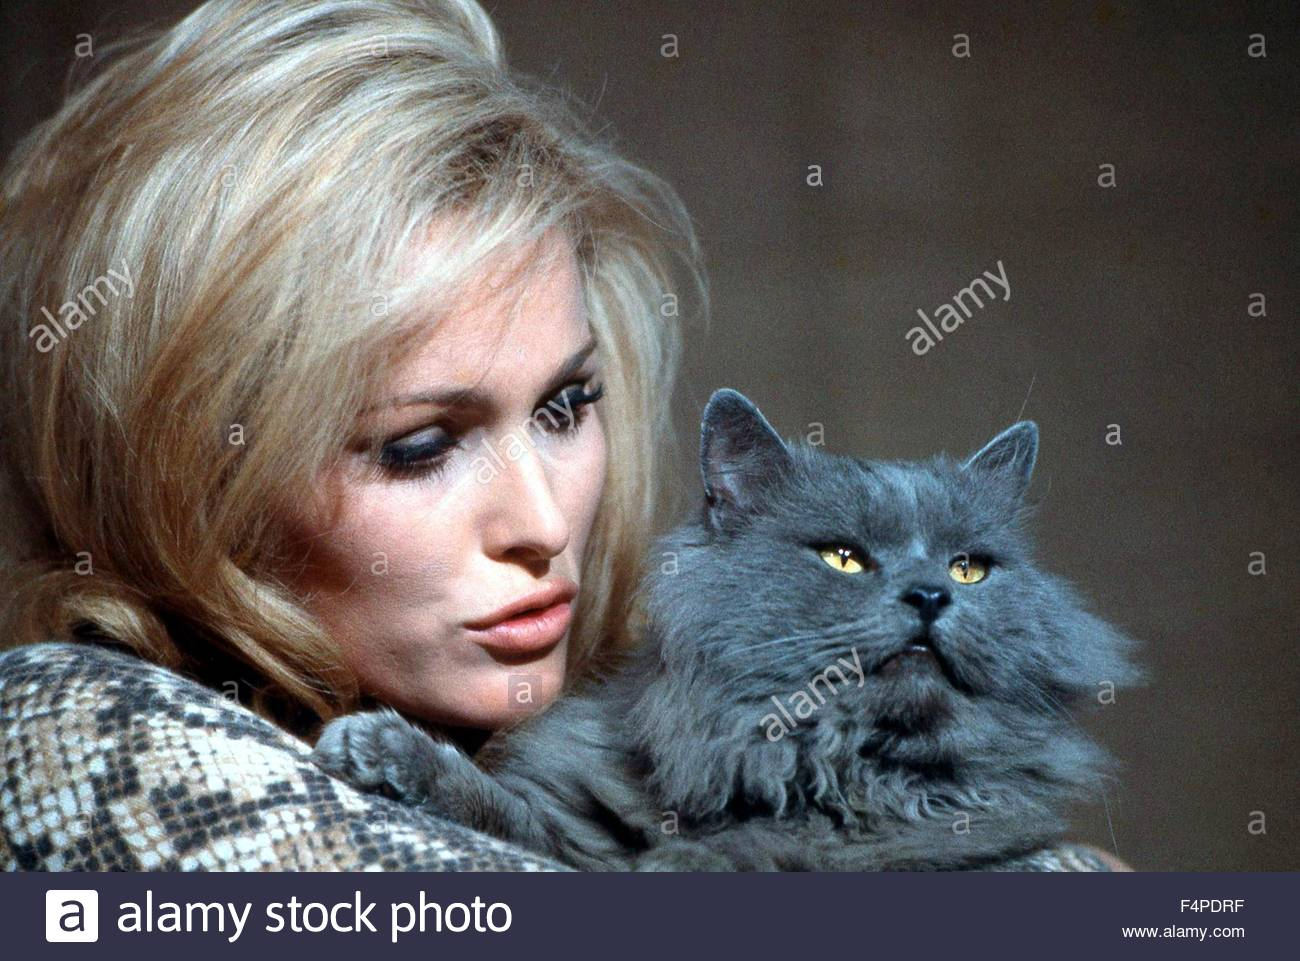 Ursula Andress / What's New Pussycat 1965 directed by Clive Donner - Stock Image